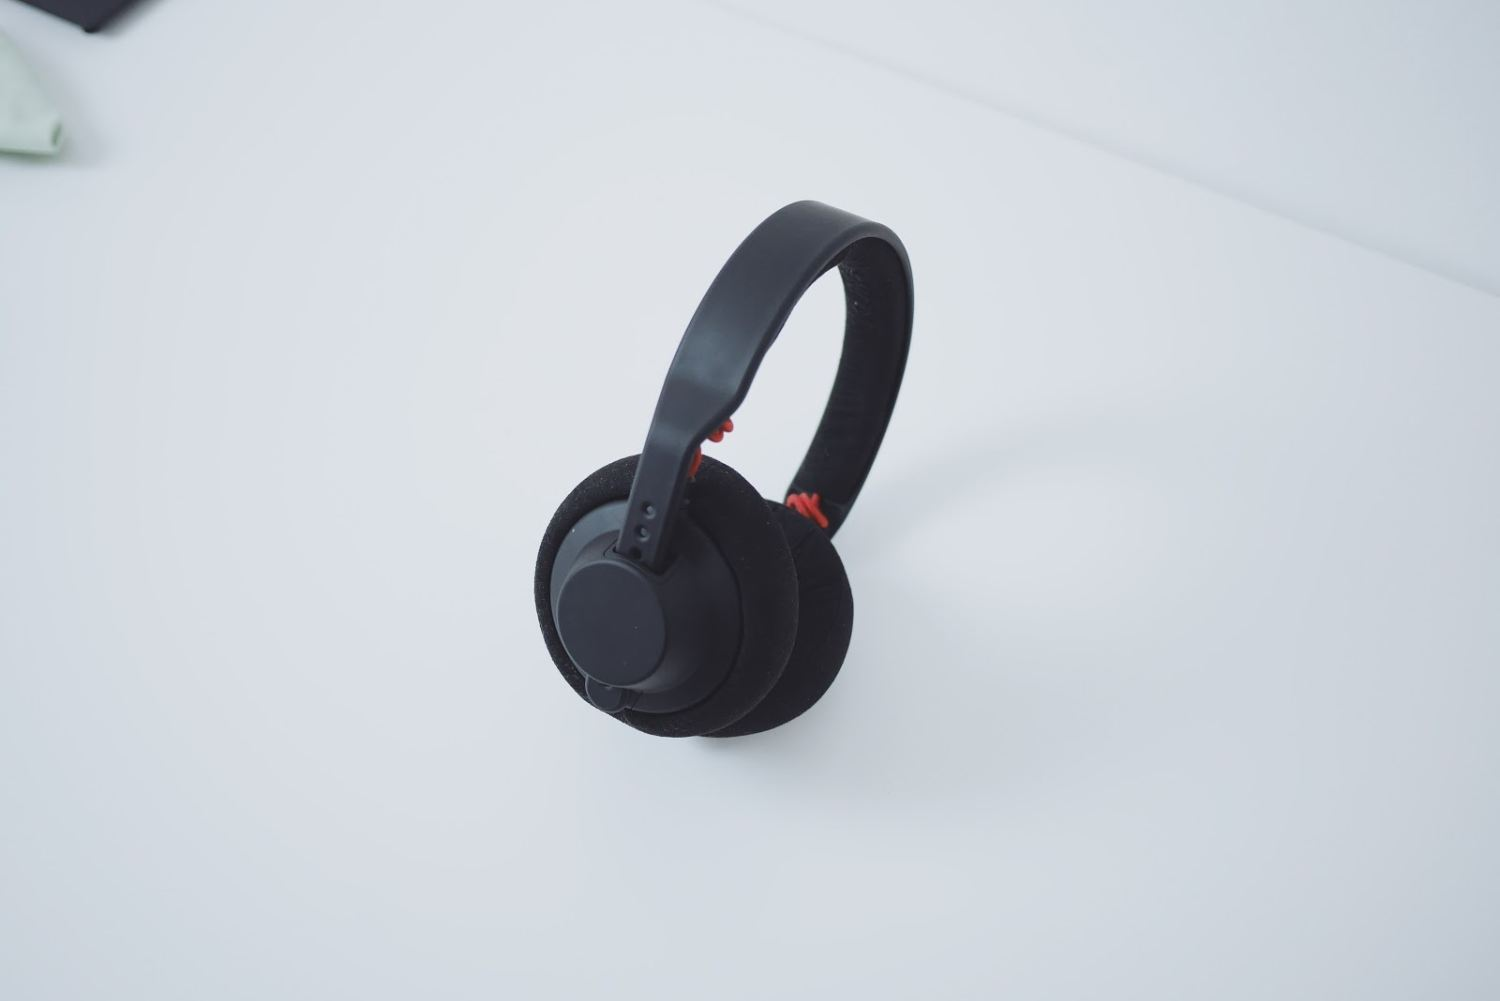 Listen to your music while staying on the go. Check out wireless headphones at CellularOutfitter today!